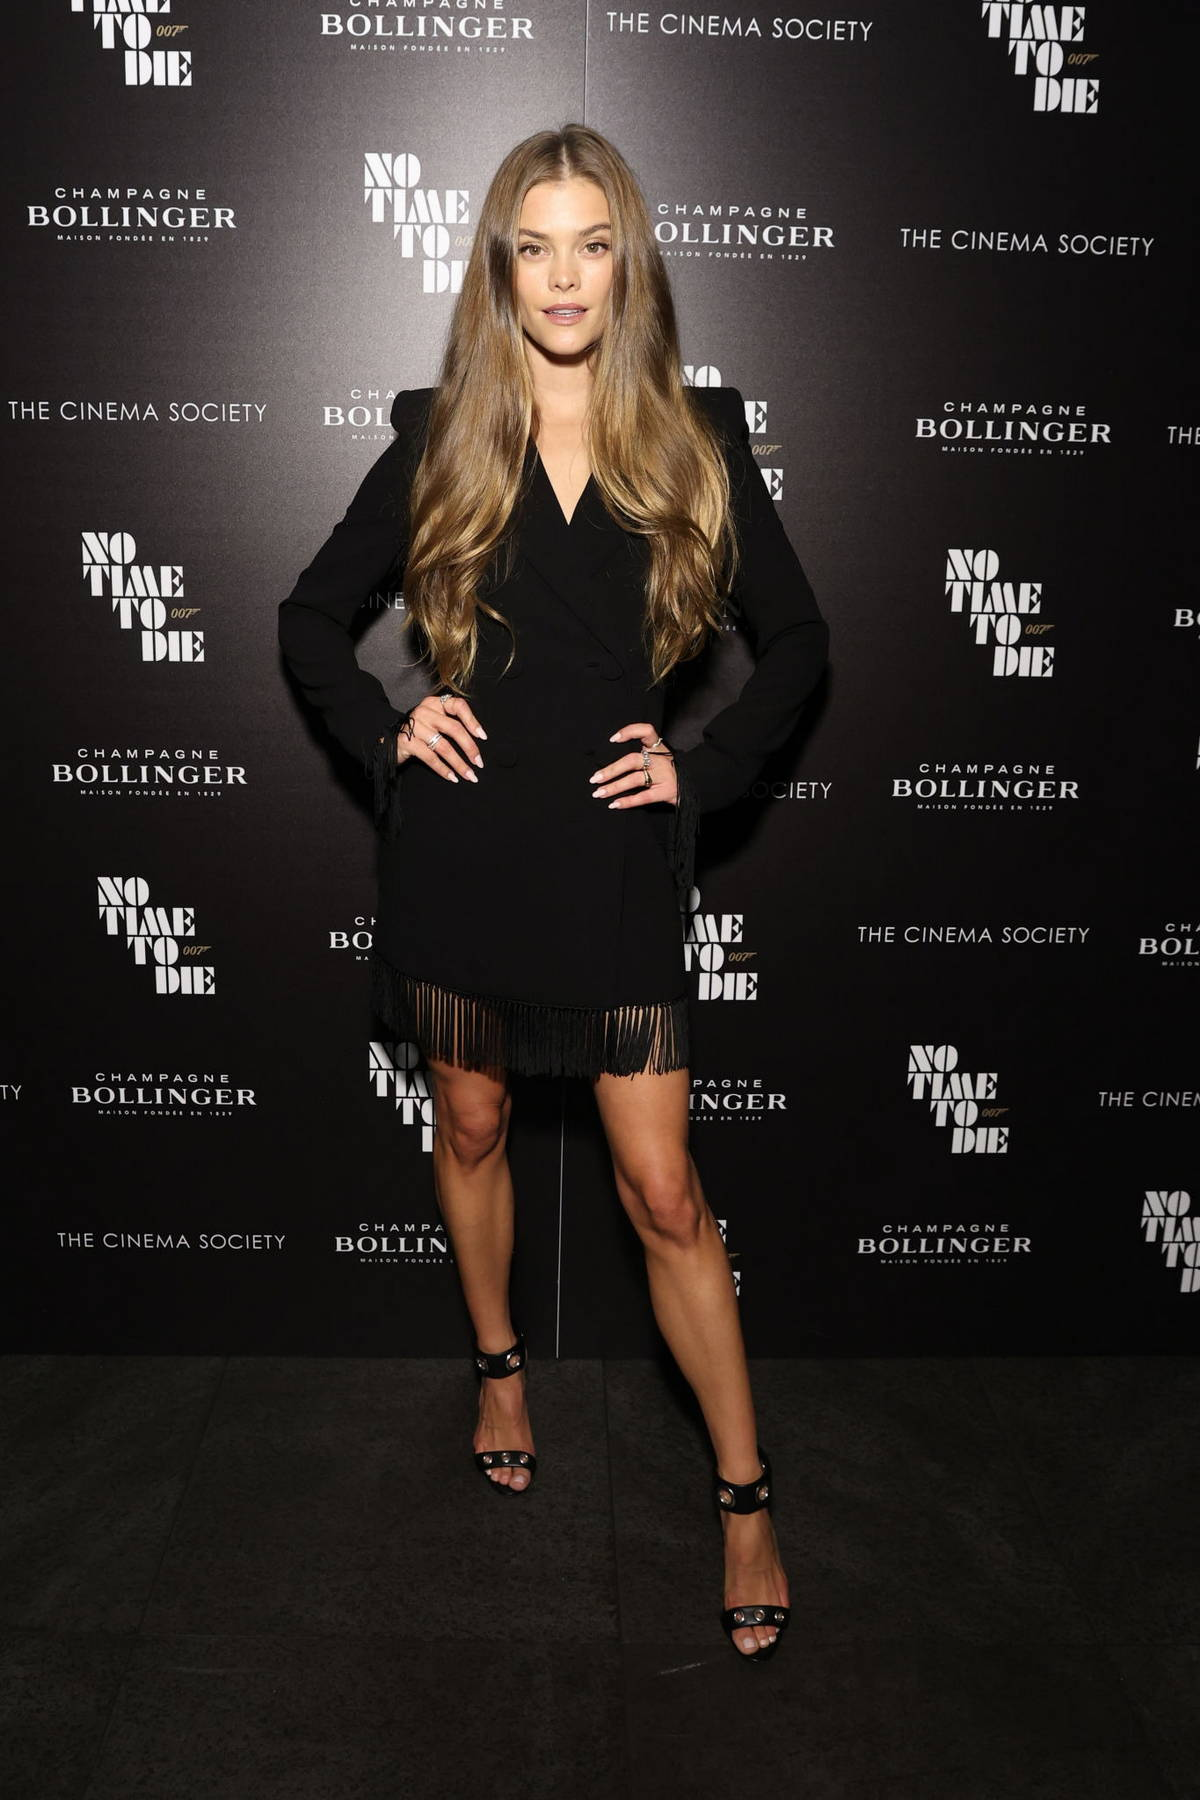 Nina Agdal attends the 'No Time To Die' New York Screening at iPic Theater in New York City